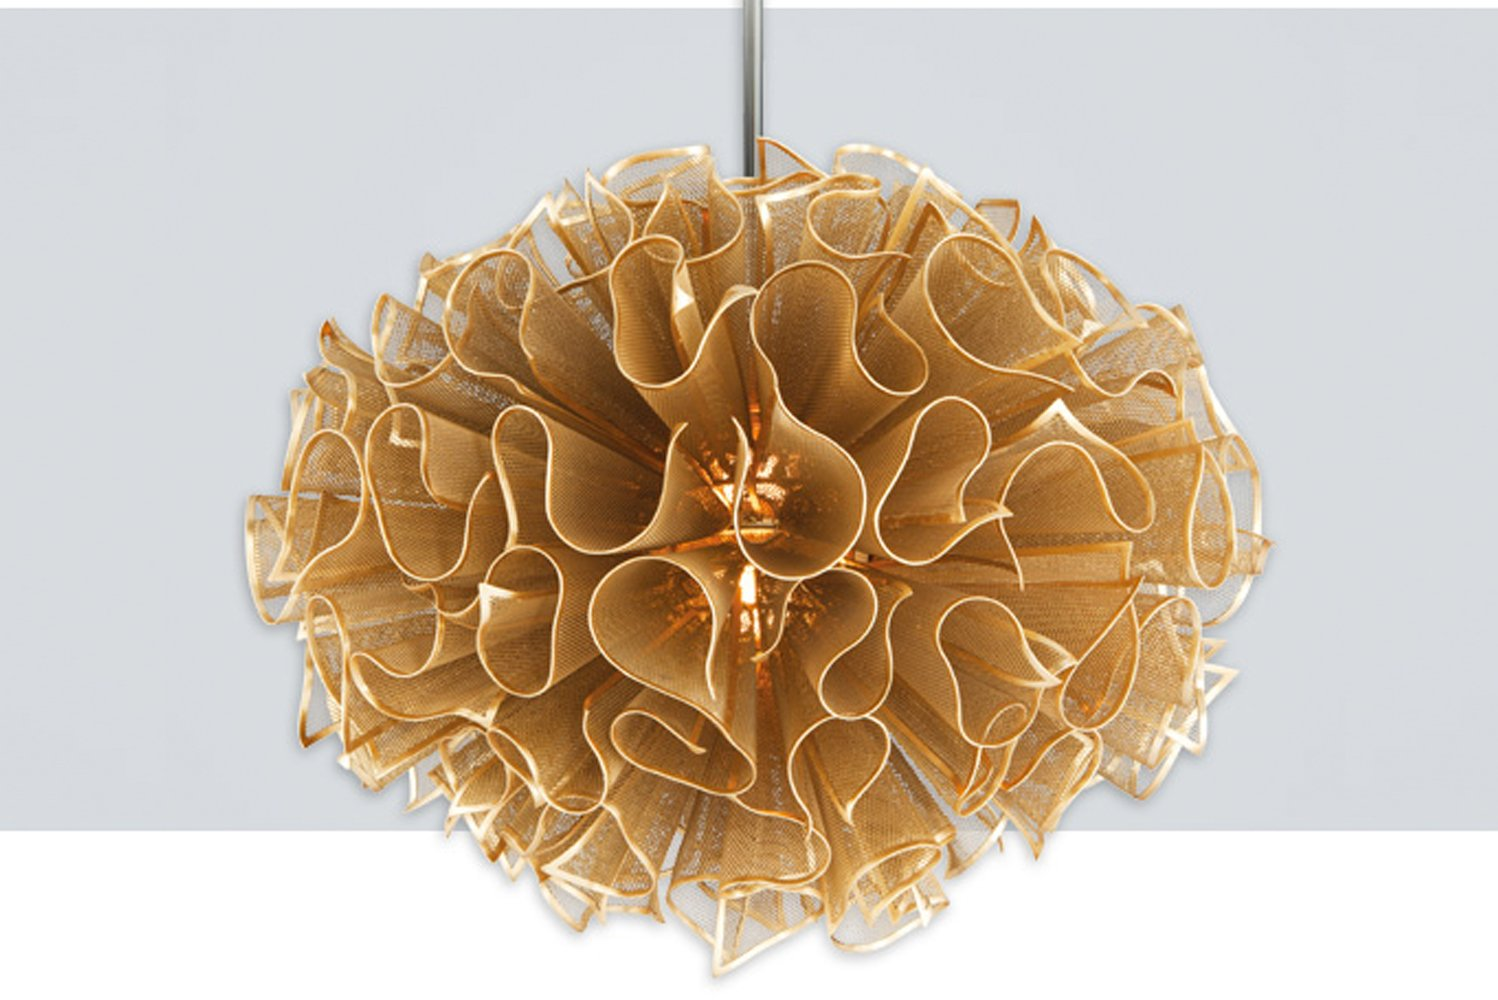 Pulse by Corbett Lighting is a sculptural design made of handcrafted iron mesh finished in gold leaf.